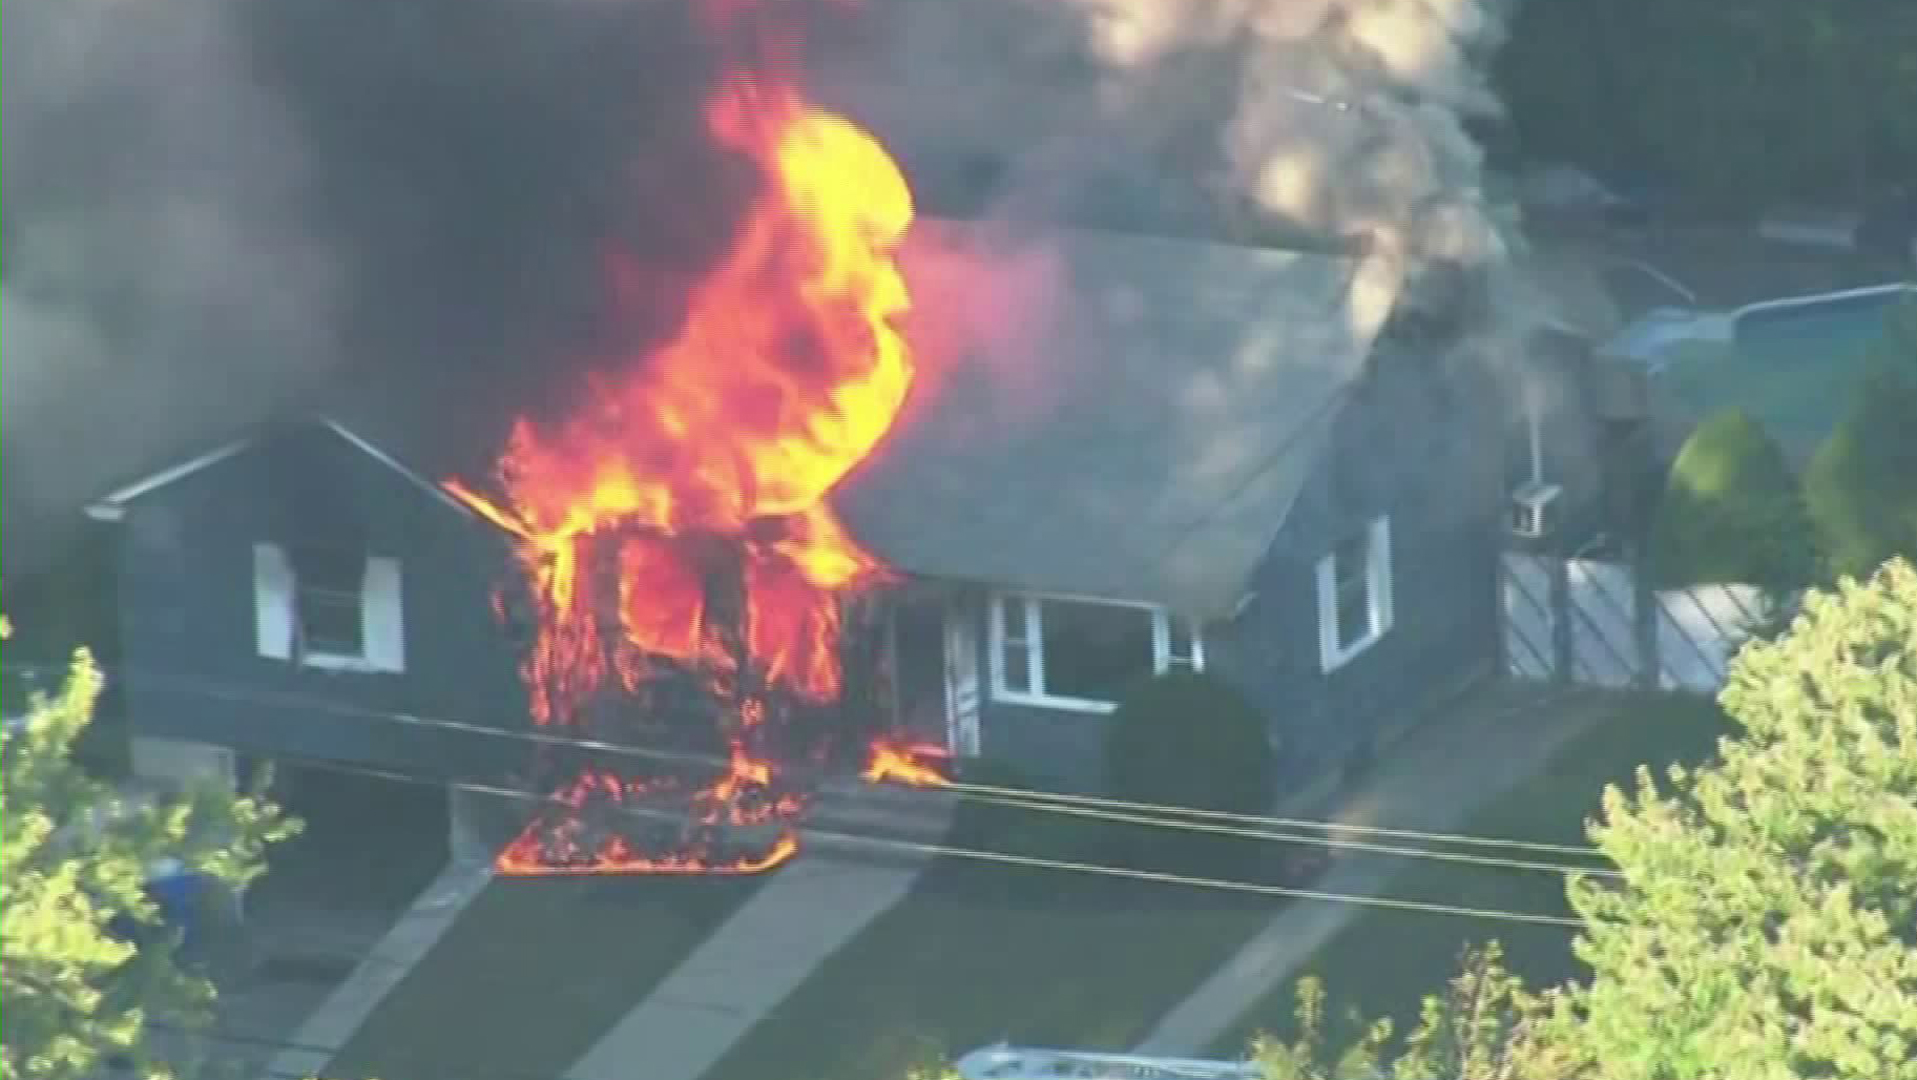 A home burned in Massachusetts after reports of suspected gas explosions on Sept. 13, 2018. (Credit: WBZ)